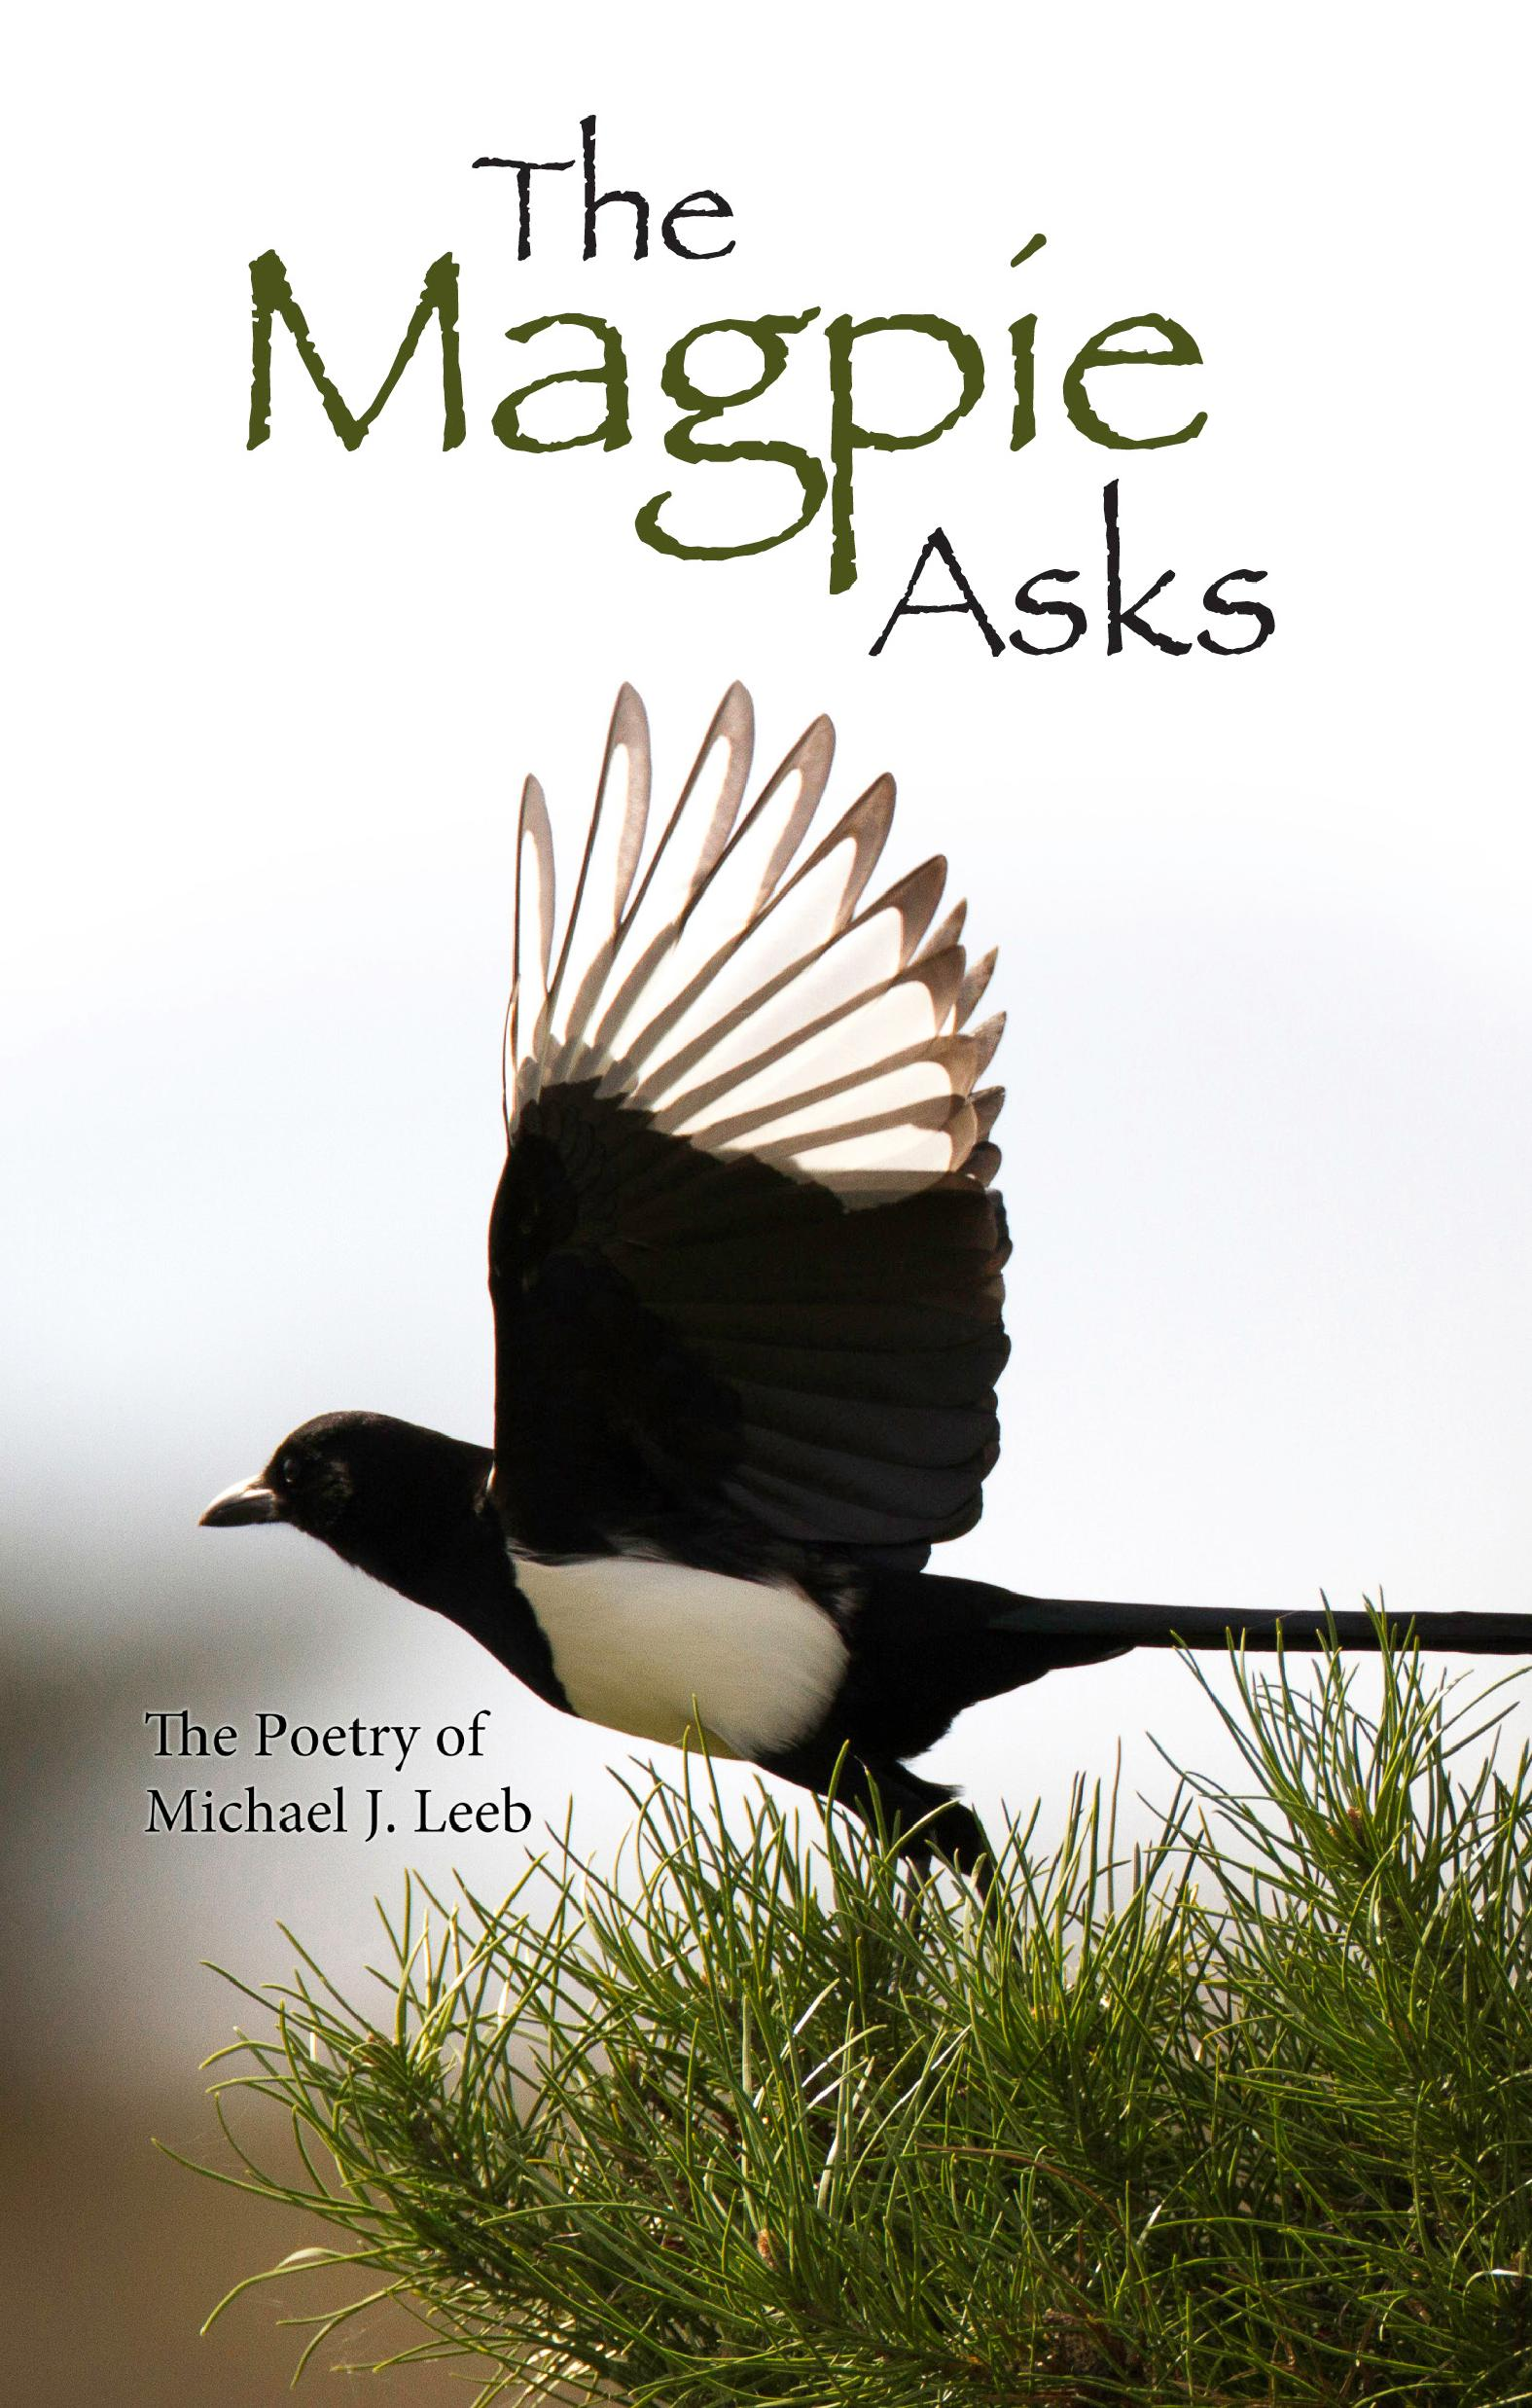 The Magpie Asks